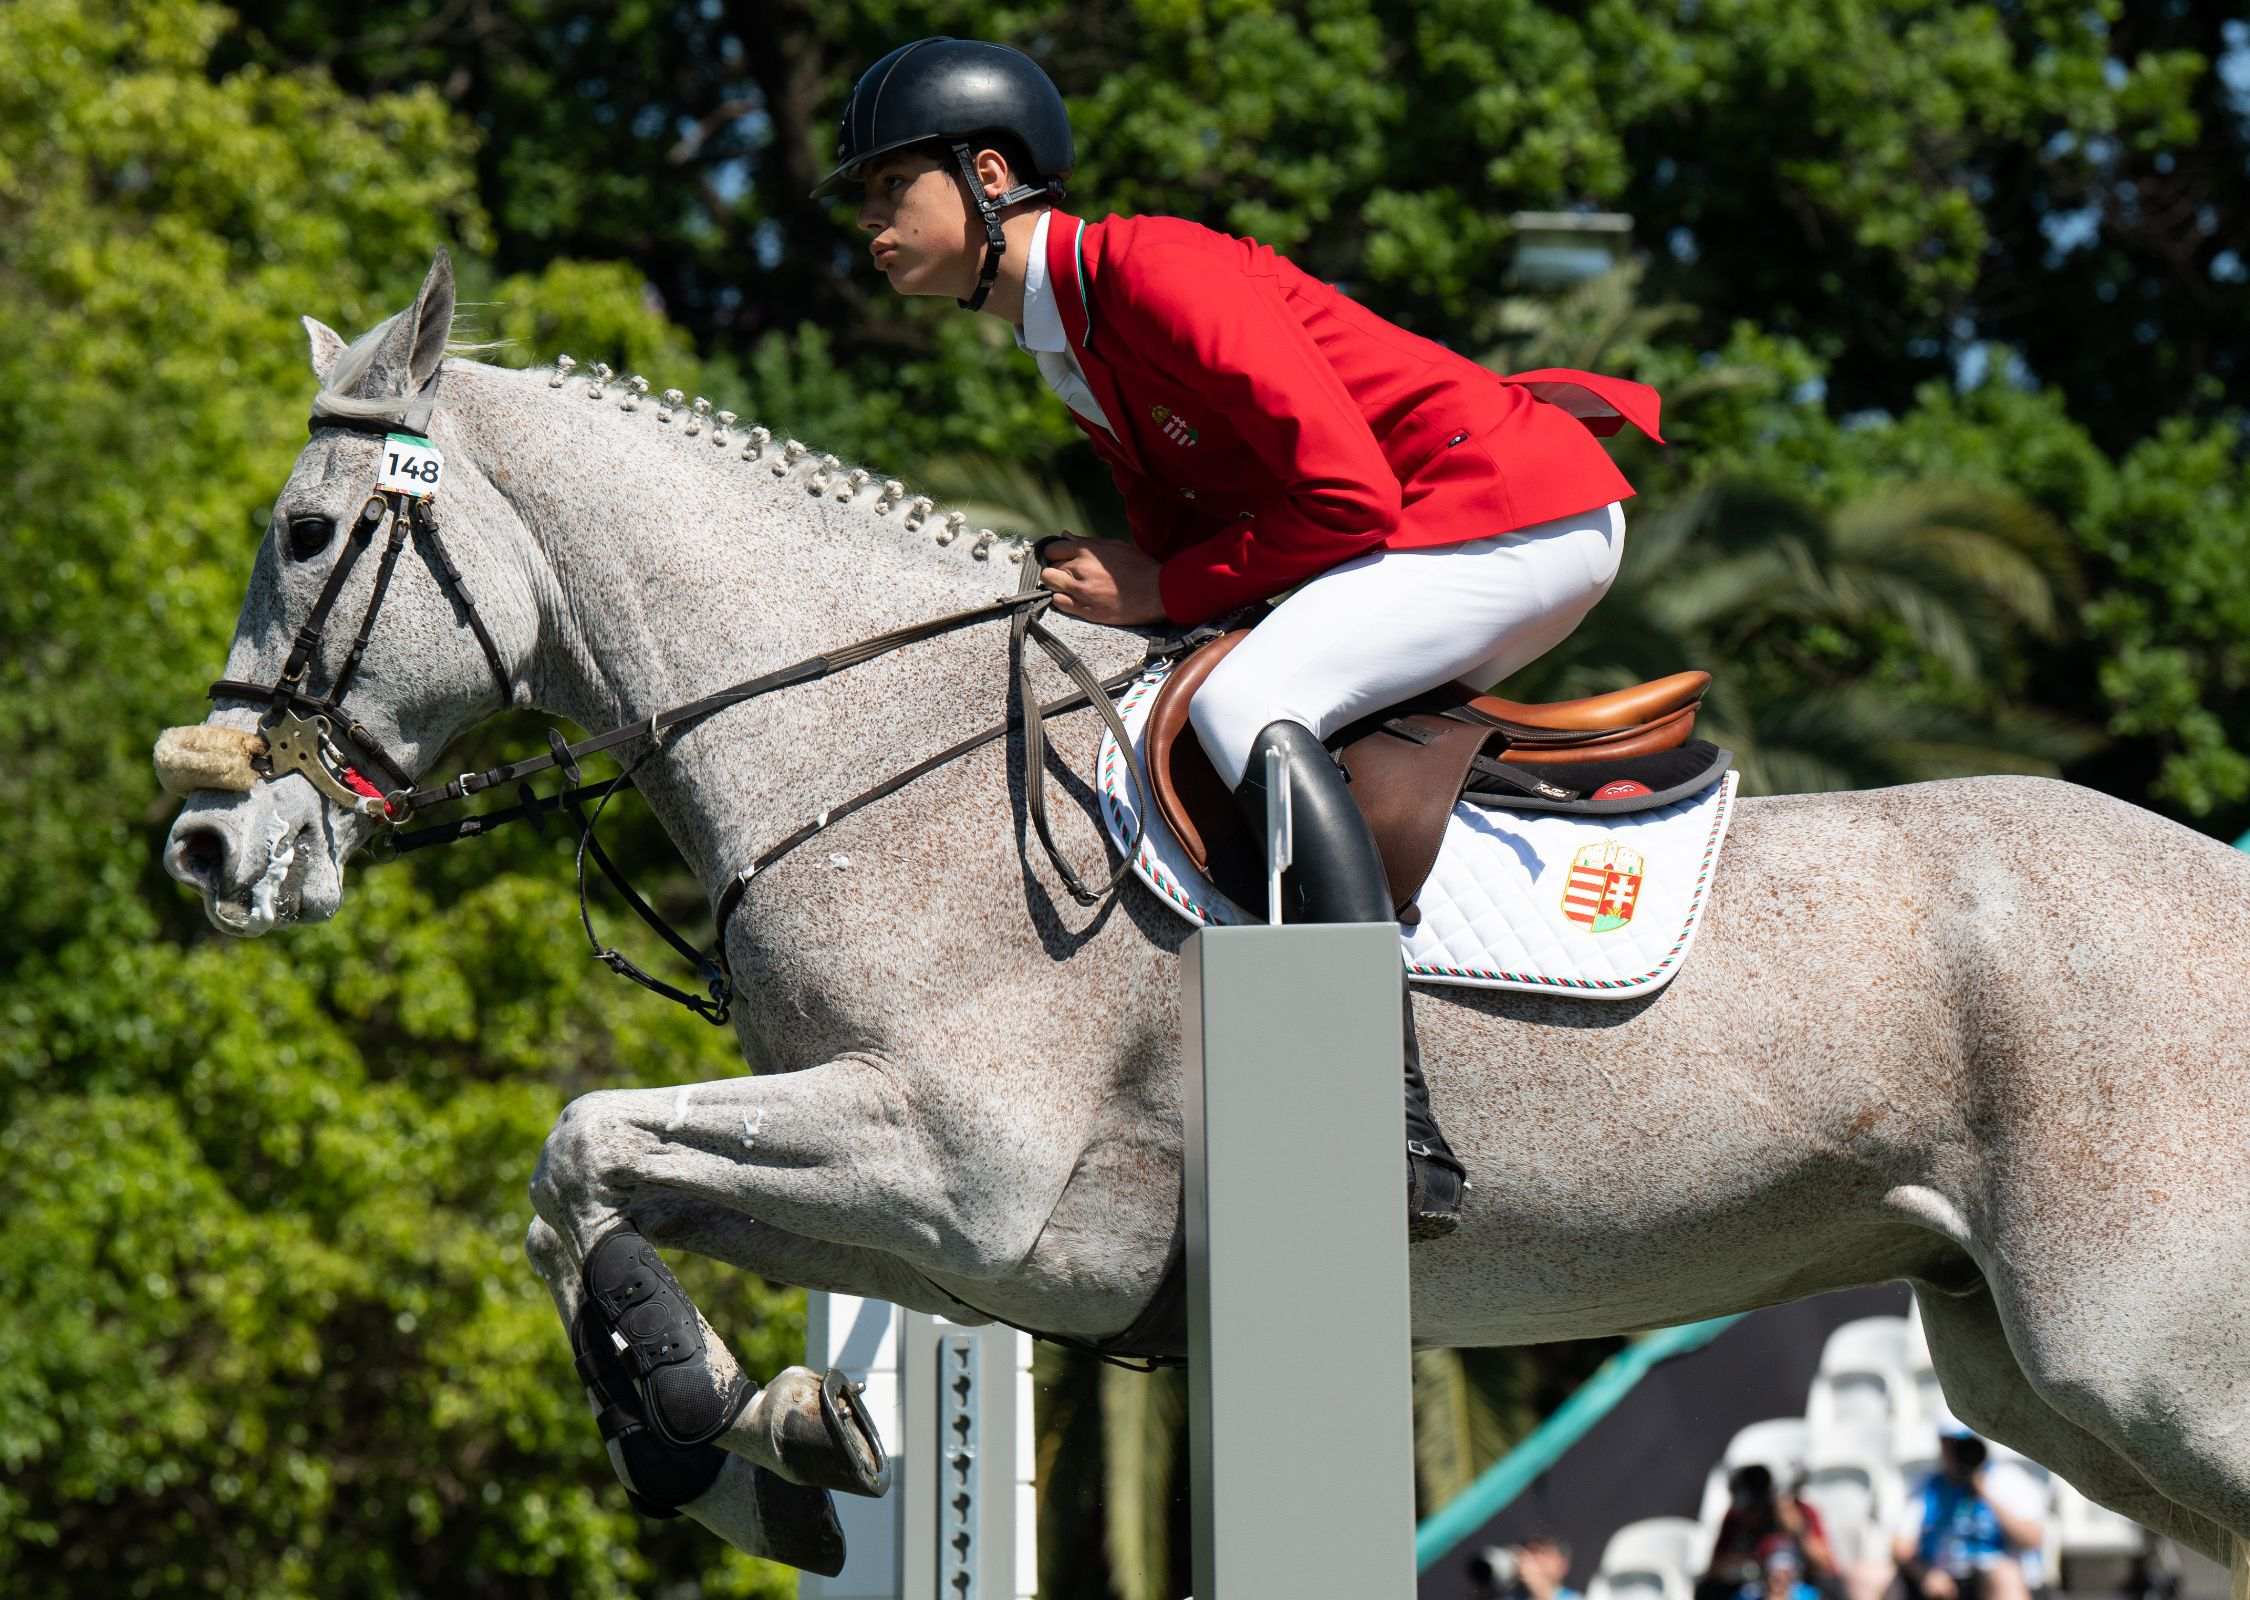 Buenos Aires 2018 - Equestrian - Jumping